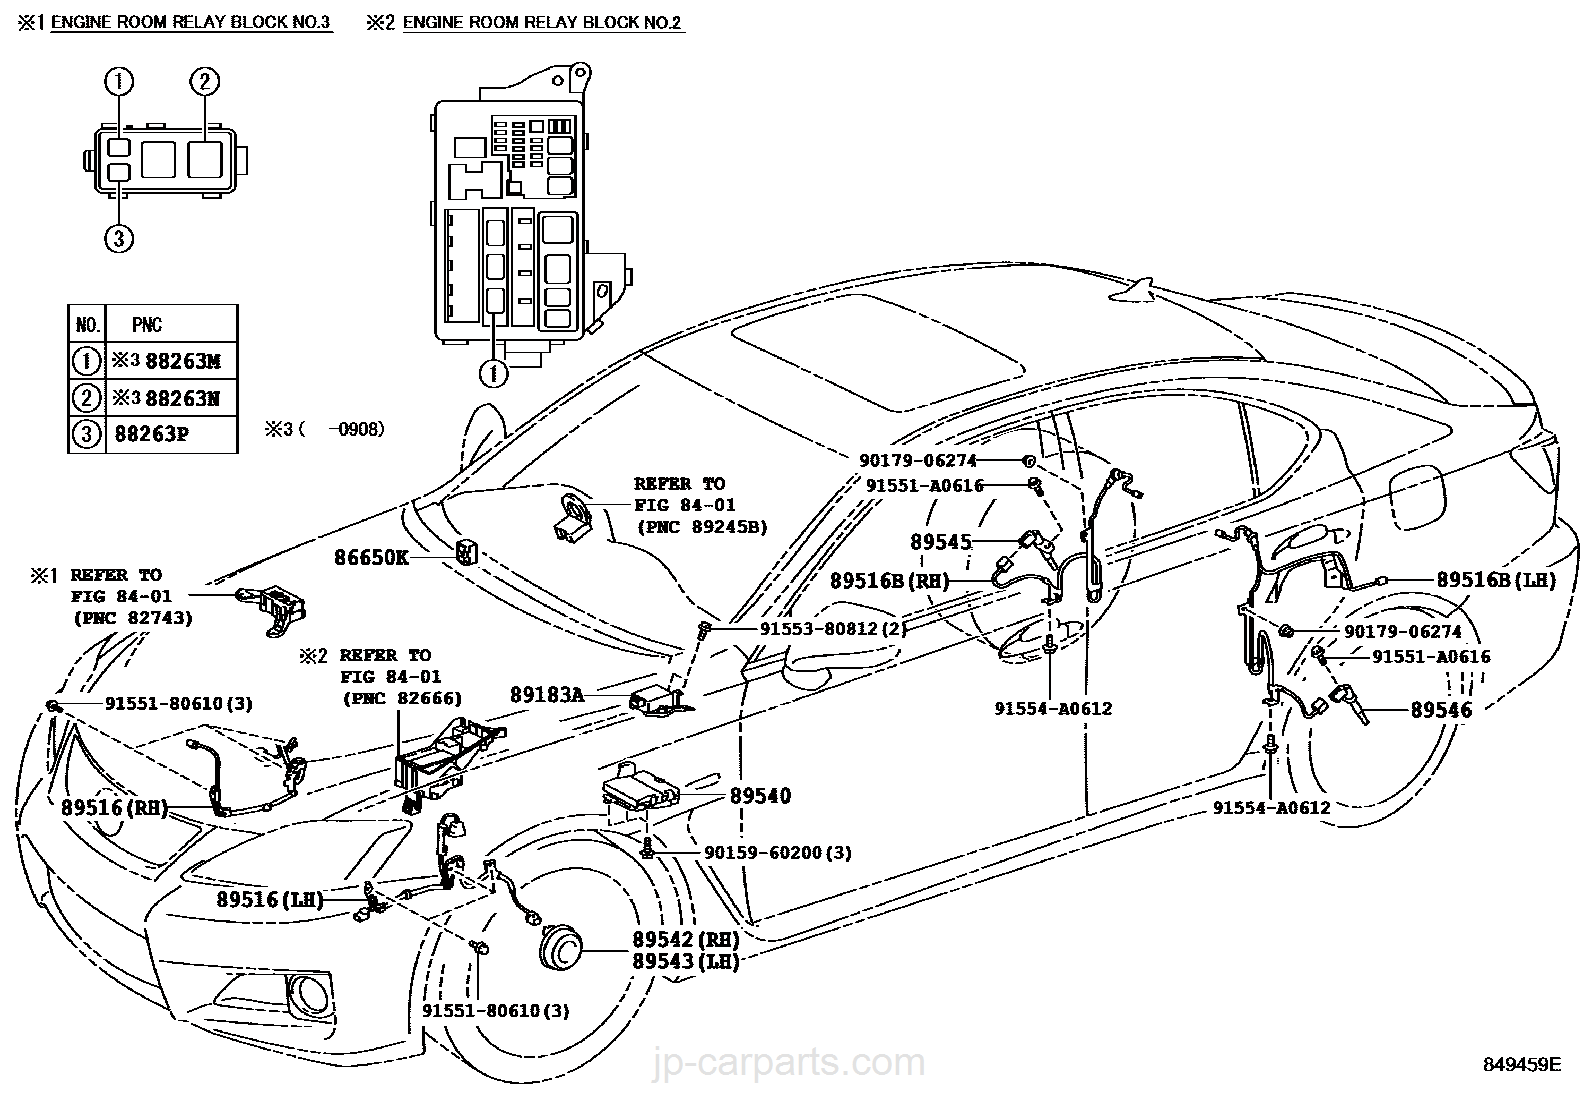 Car Part Names And Diagrams moreover 49a0f 2004 Gmc Hot Air Climate Control Slides Blend Door Actuator Maybe together with 58rf1 Keeps Blowing Acc Fuse When Going Down Road Sitting as well HP PartList also 488418 4x4 Problems Electrical Manual. on chevy wiring diagrams online